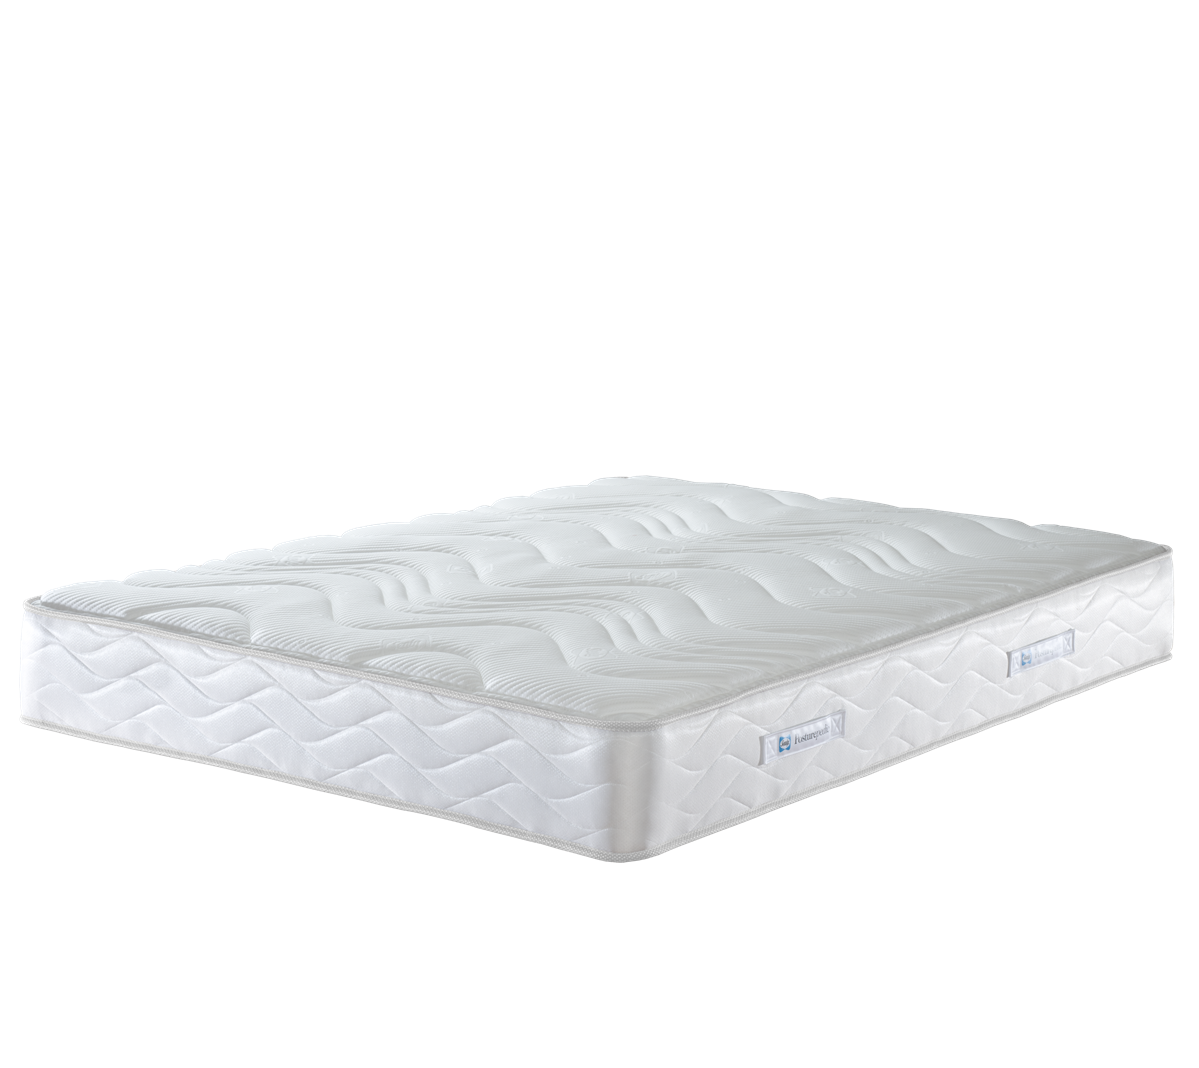 Sealy Pearl Memory Mattress Best Price Promise